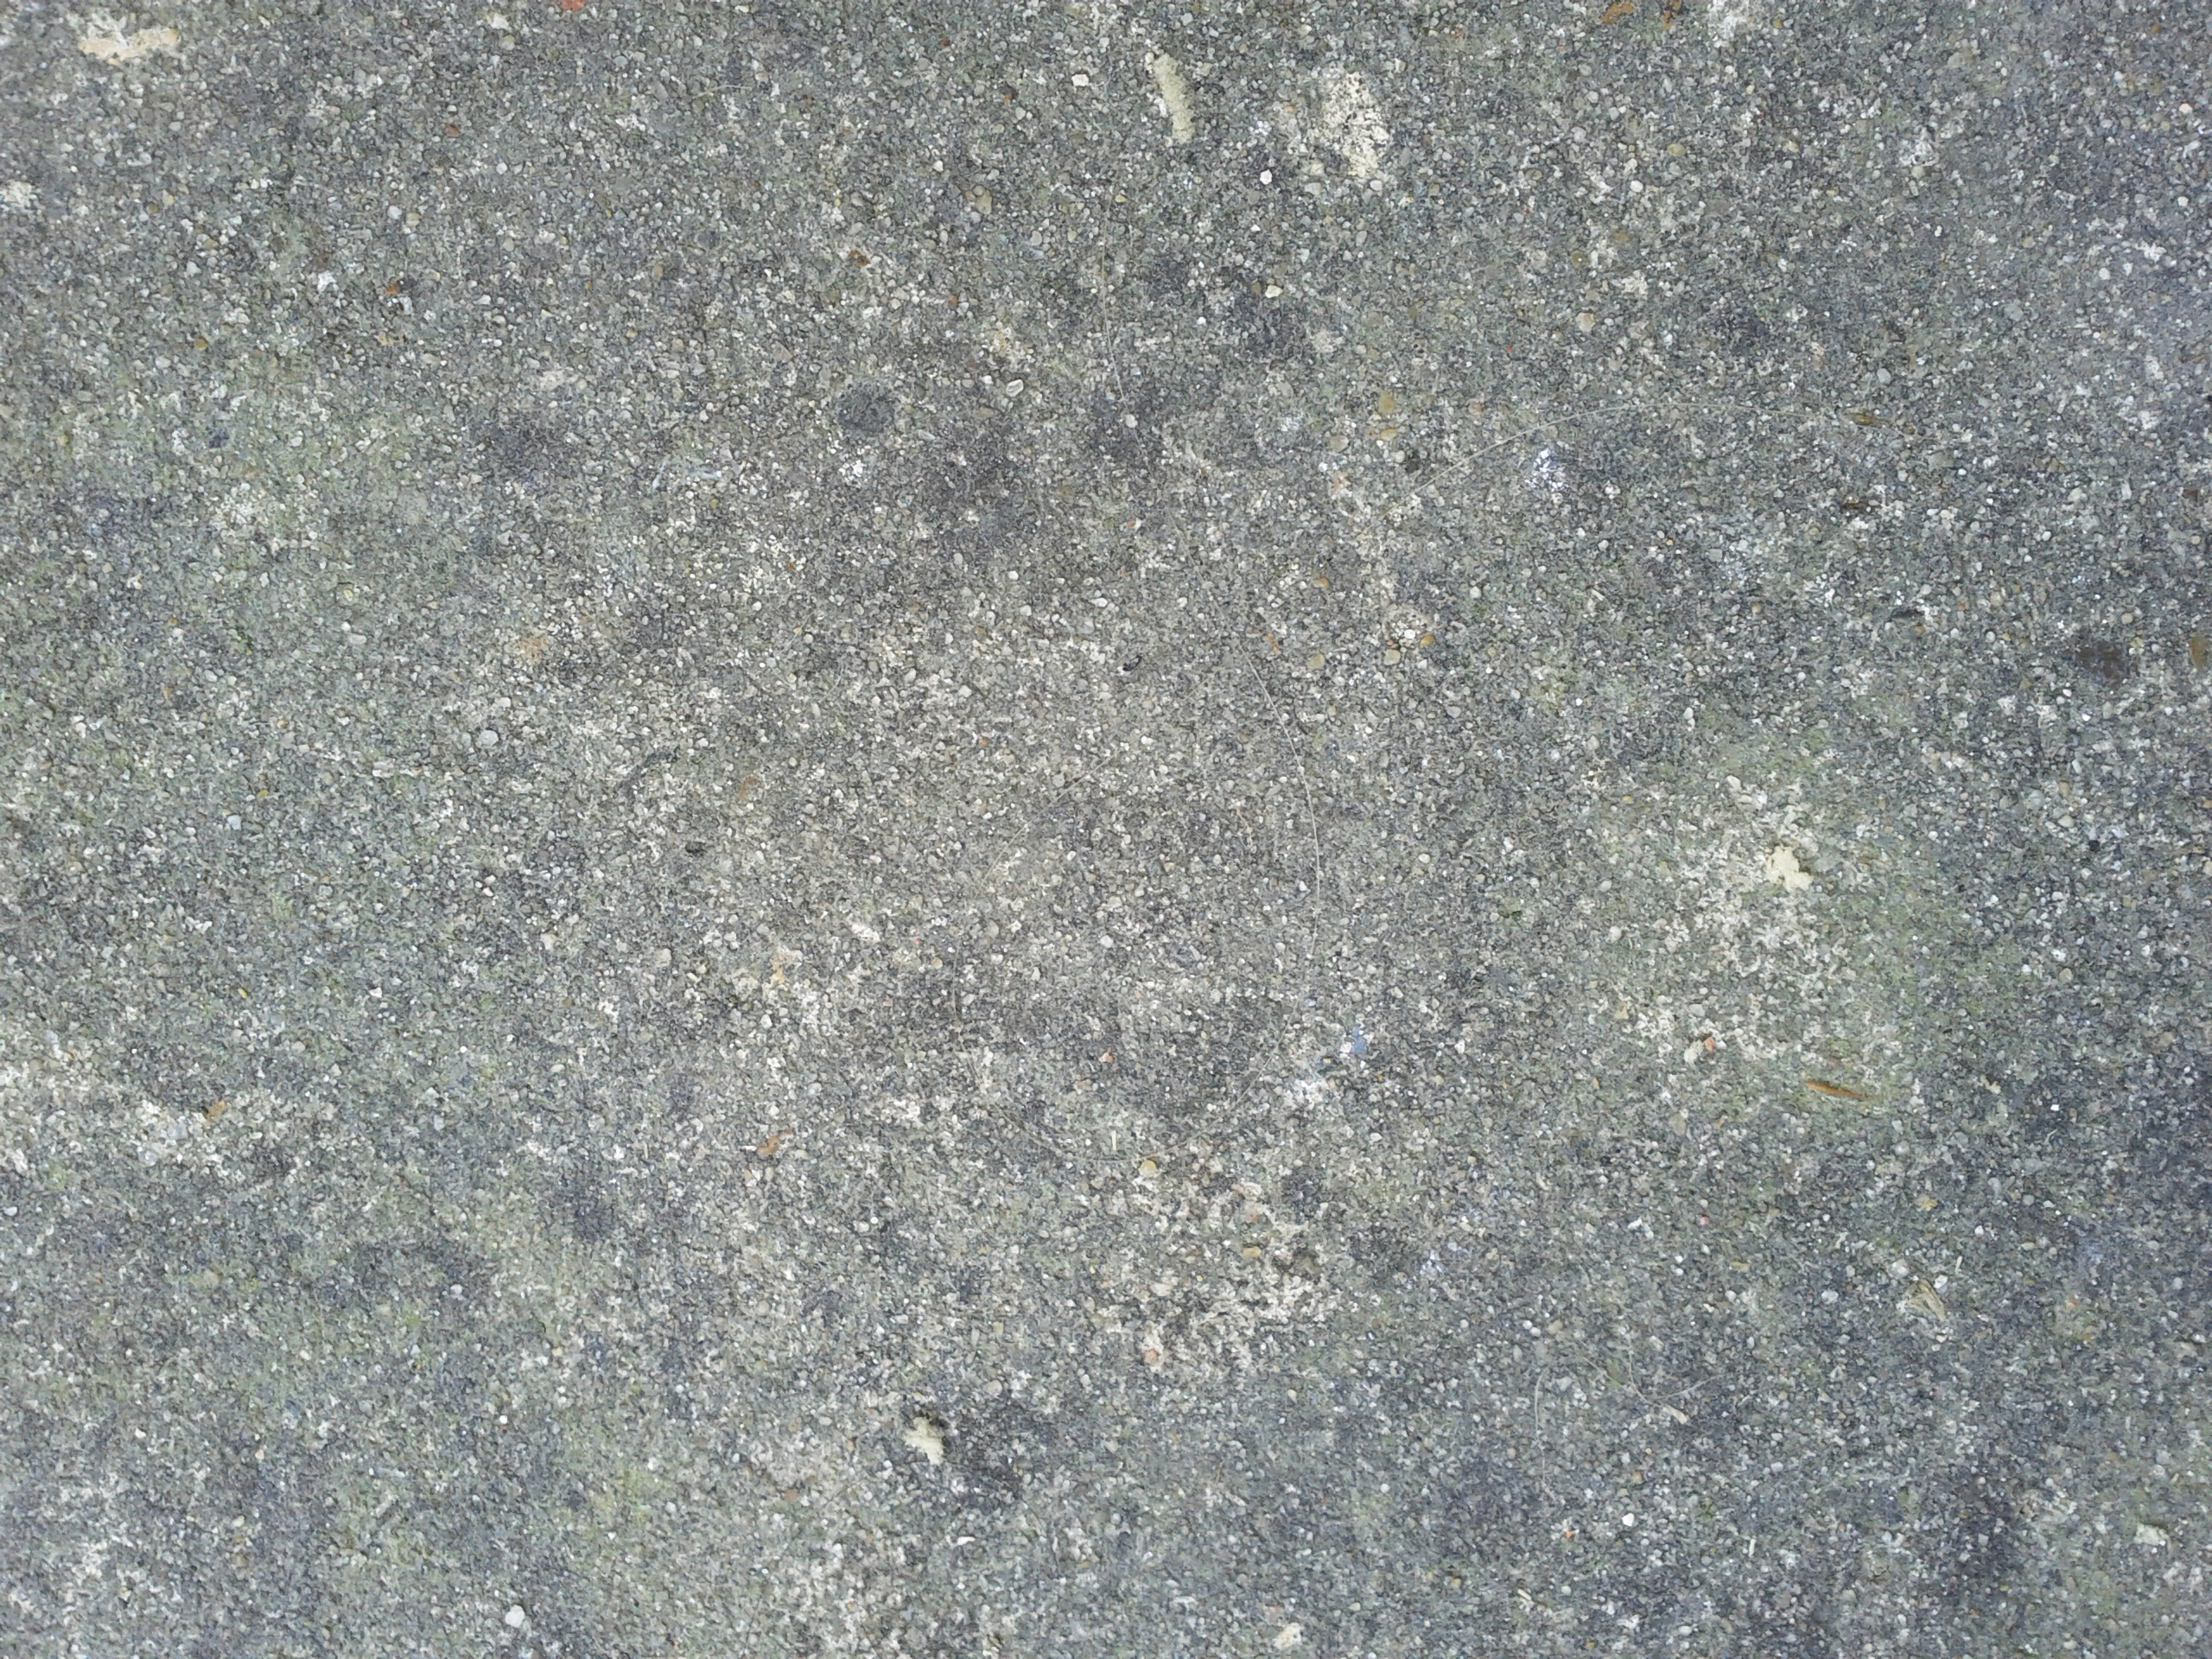 free hi res concrete texture pack 01 ian barnard On concrete texture high resolution